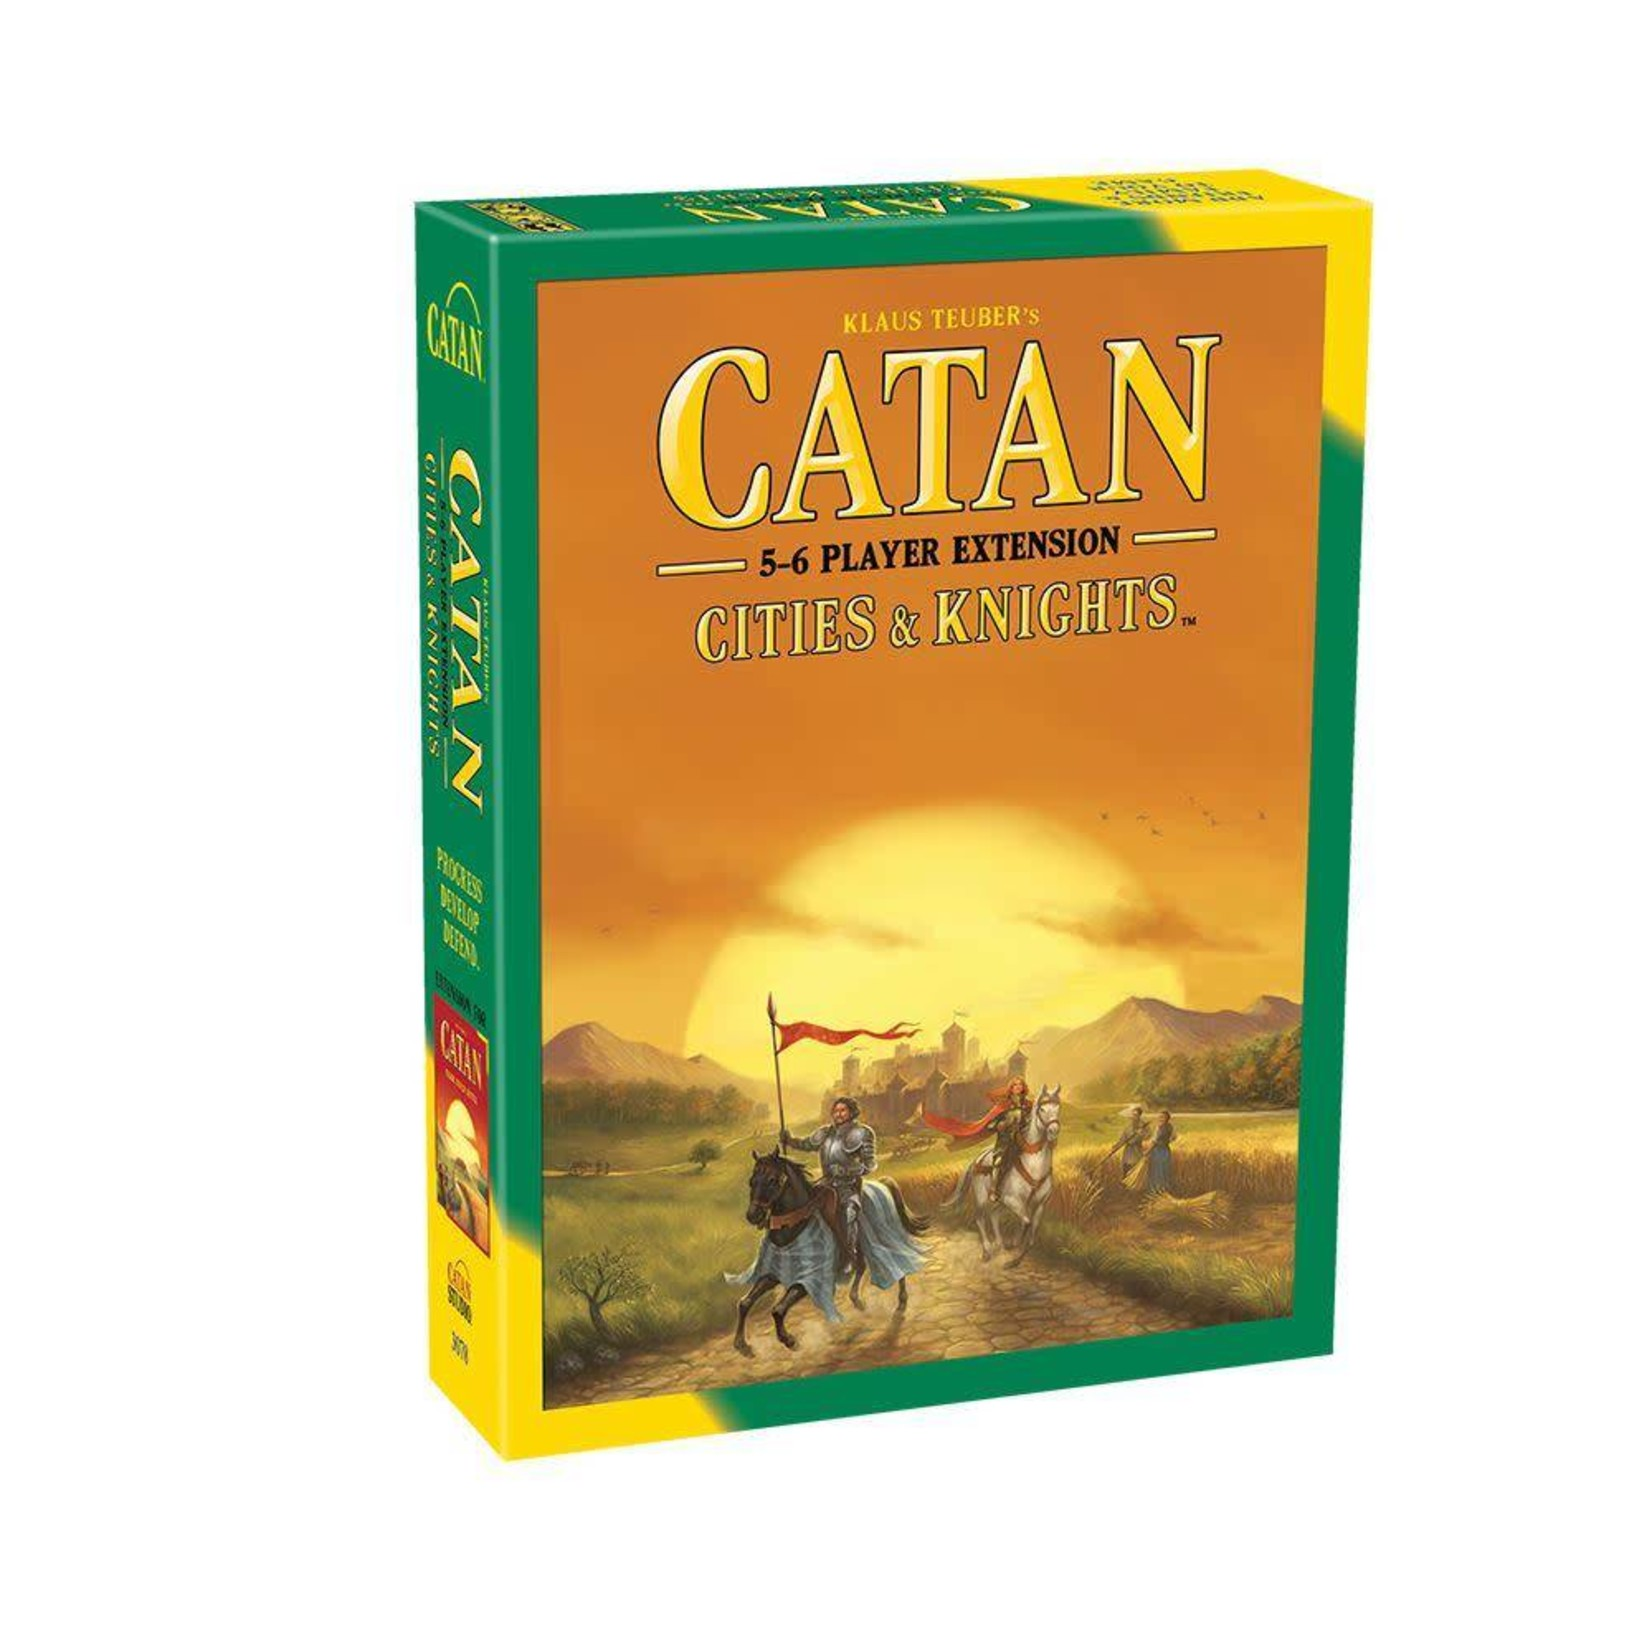 Catan Studios Catan: Cities and Knights 5-6 Player Extension